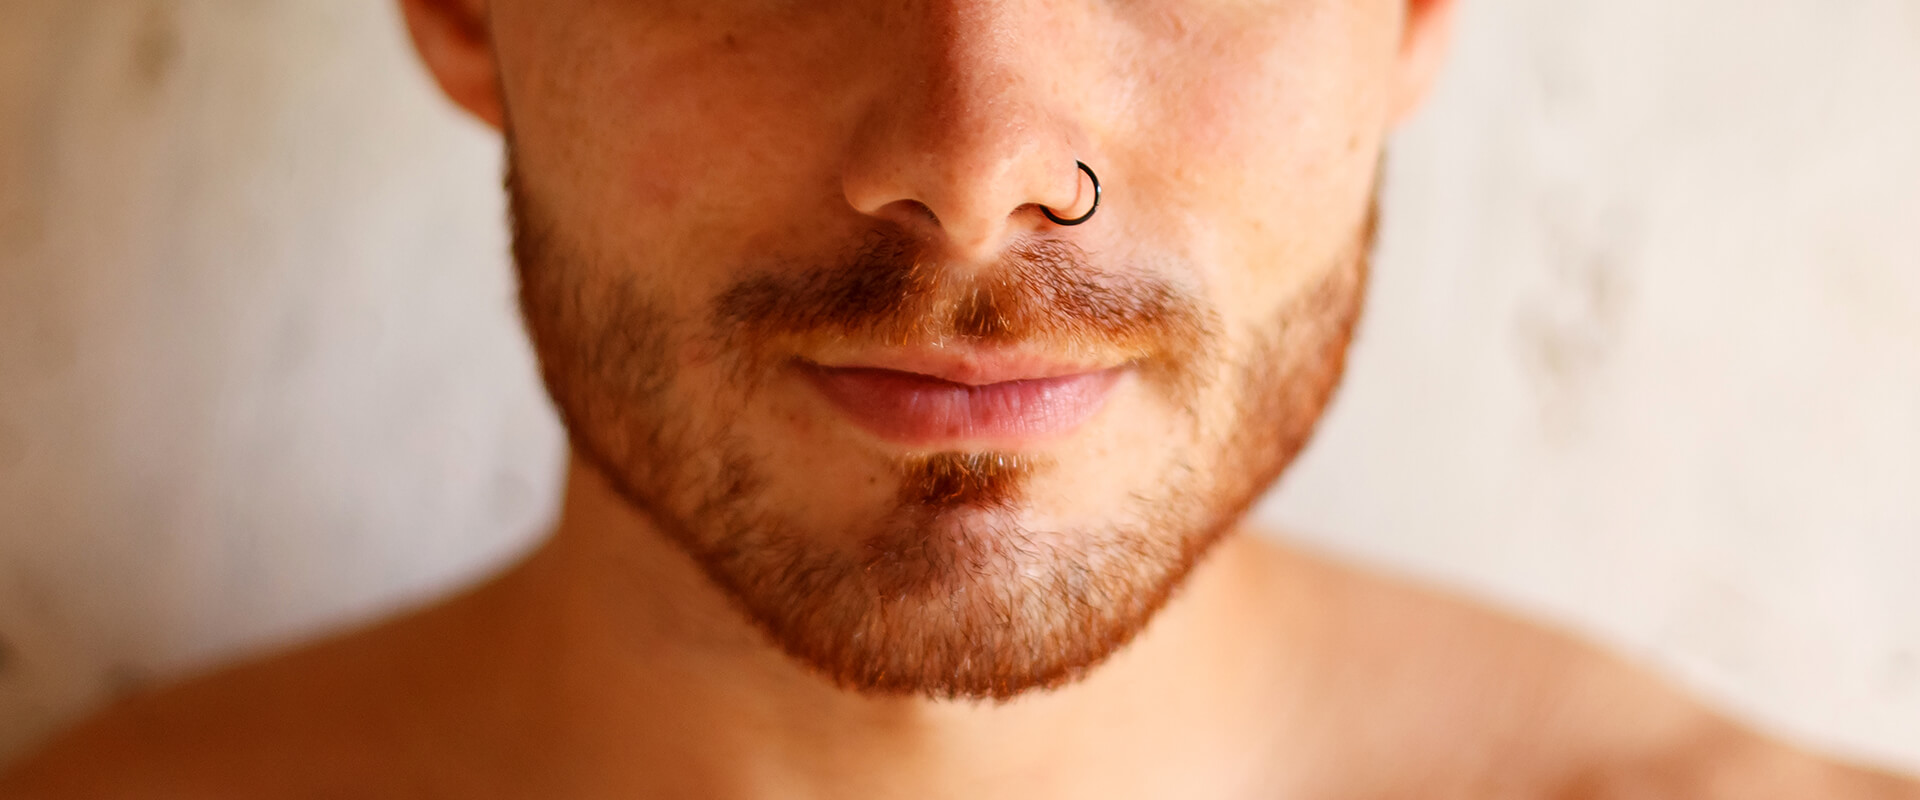 Melbourne S Leading Body Piercing Shop Body Pleasure Piercing